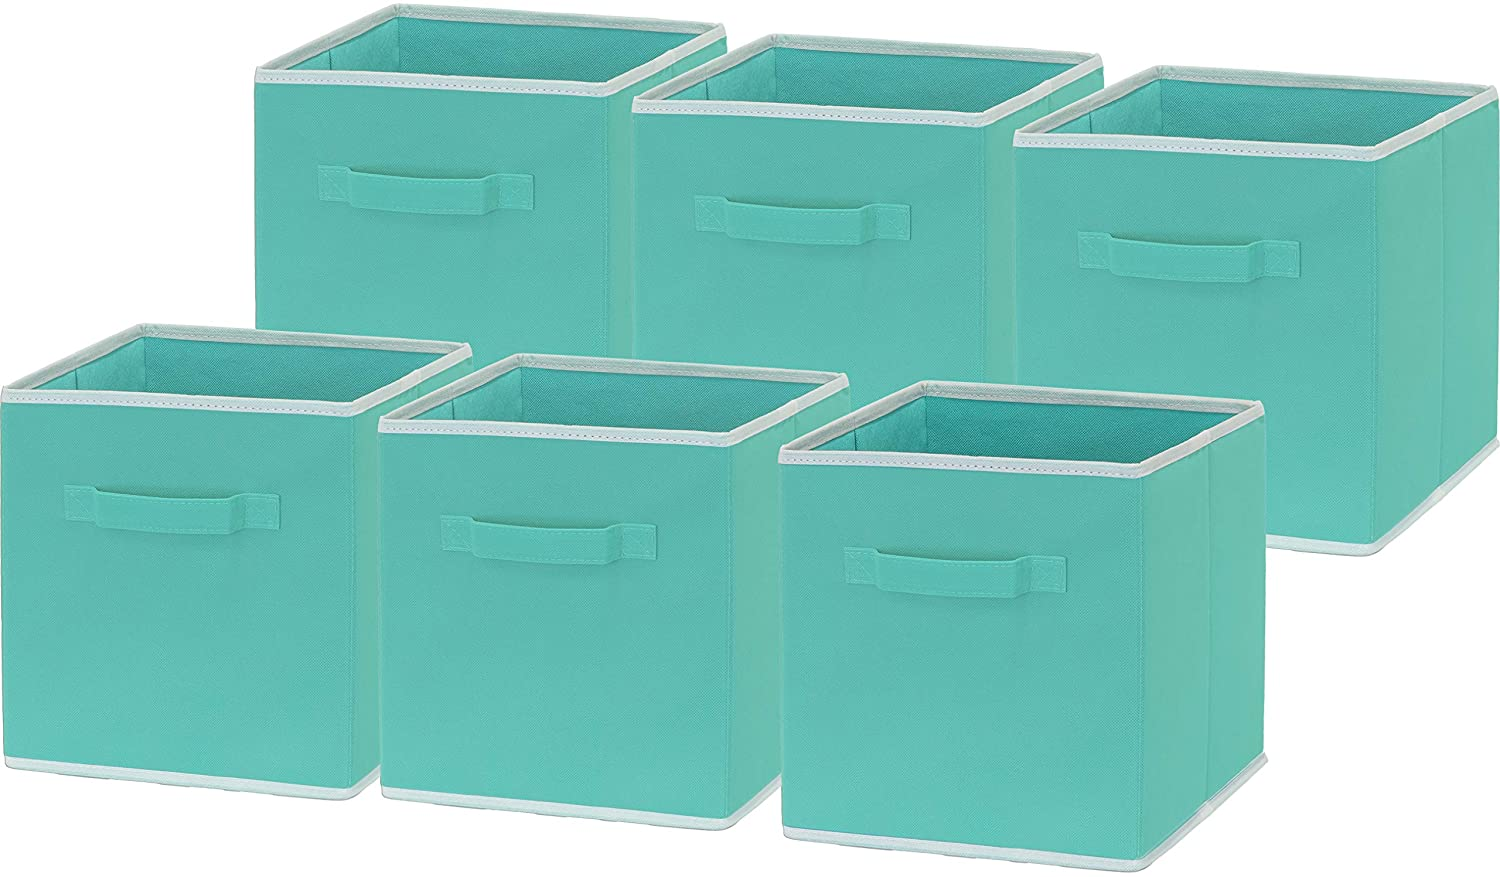 6 Pack - SimpleHouseware Foldable Cloth Storage Cube Basket Bins Organizer, Turquoise (11